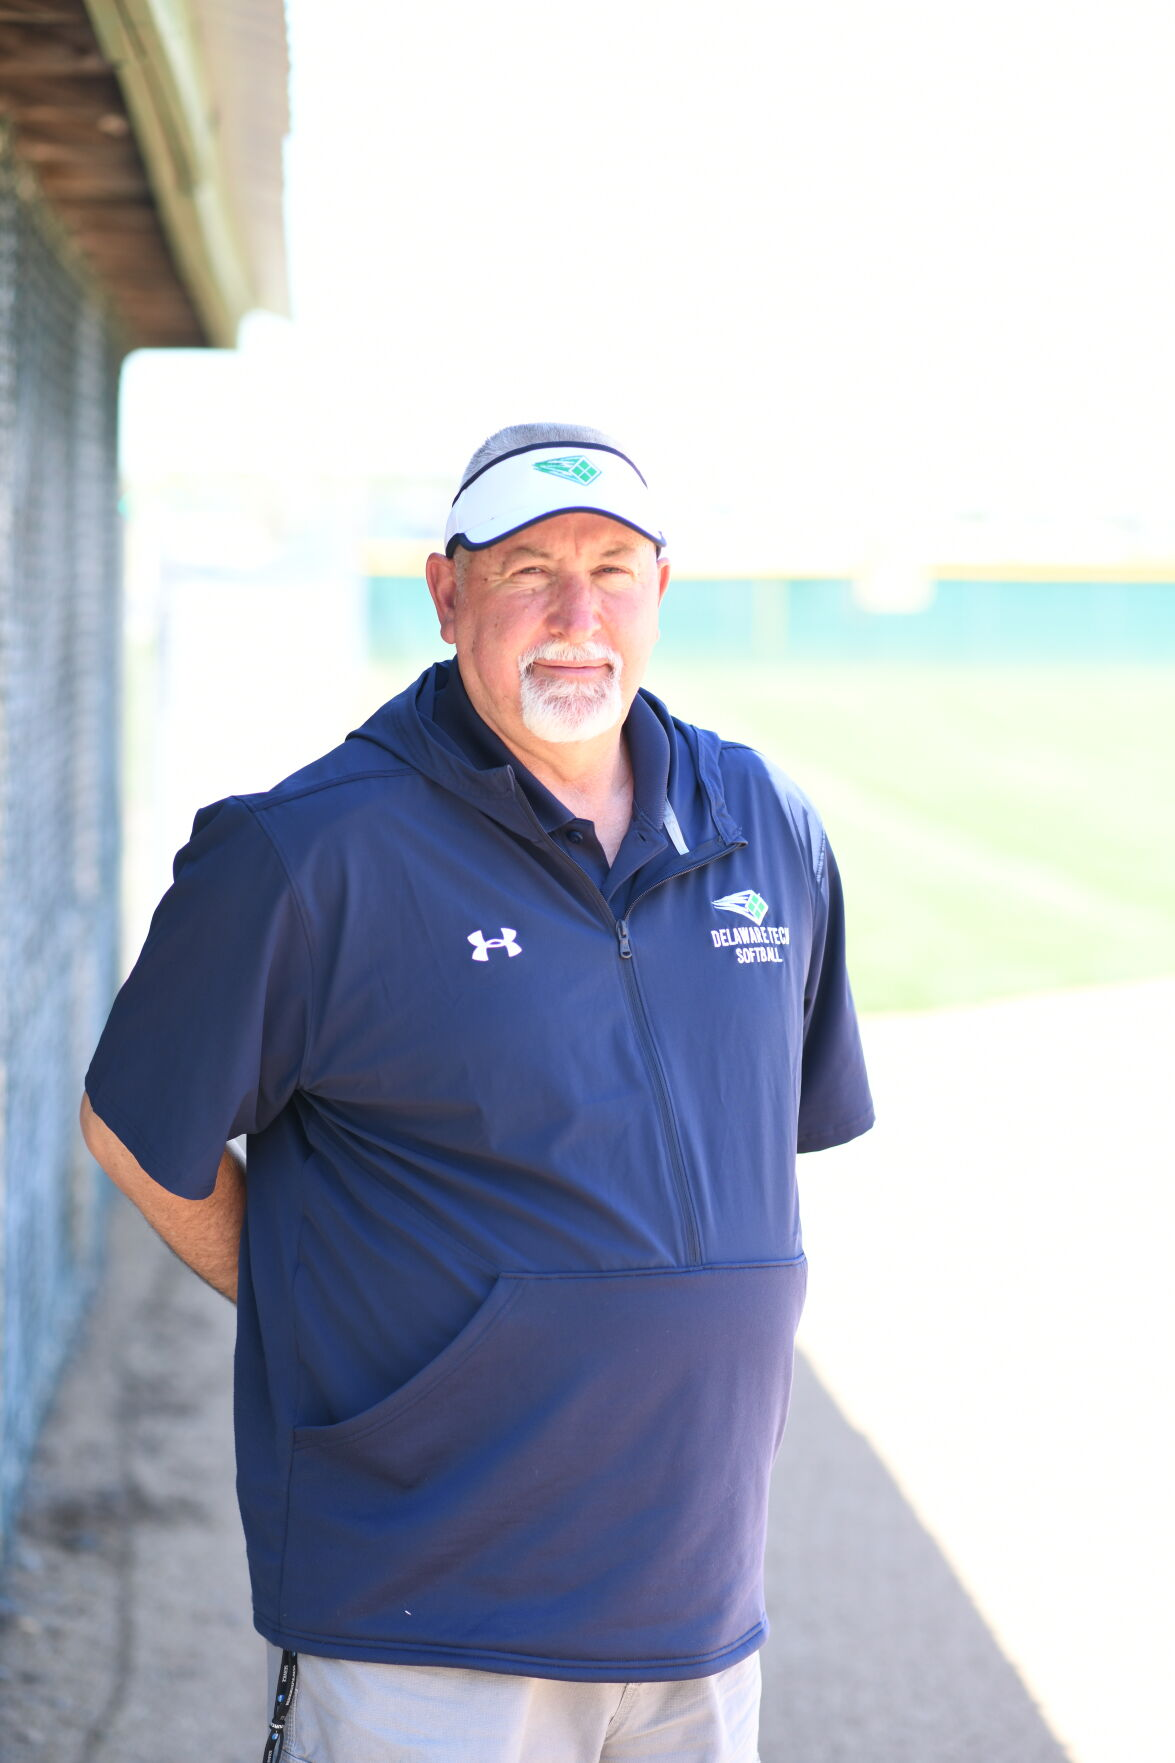 DelTech softball head coach Guy Wilkins